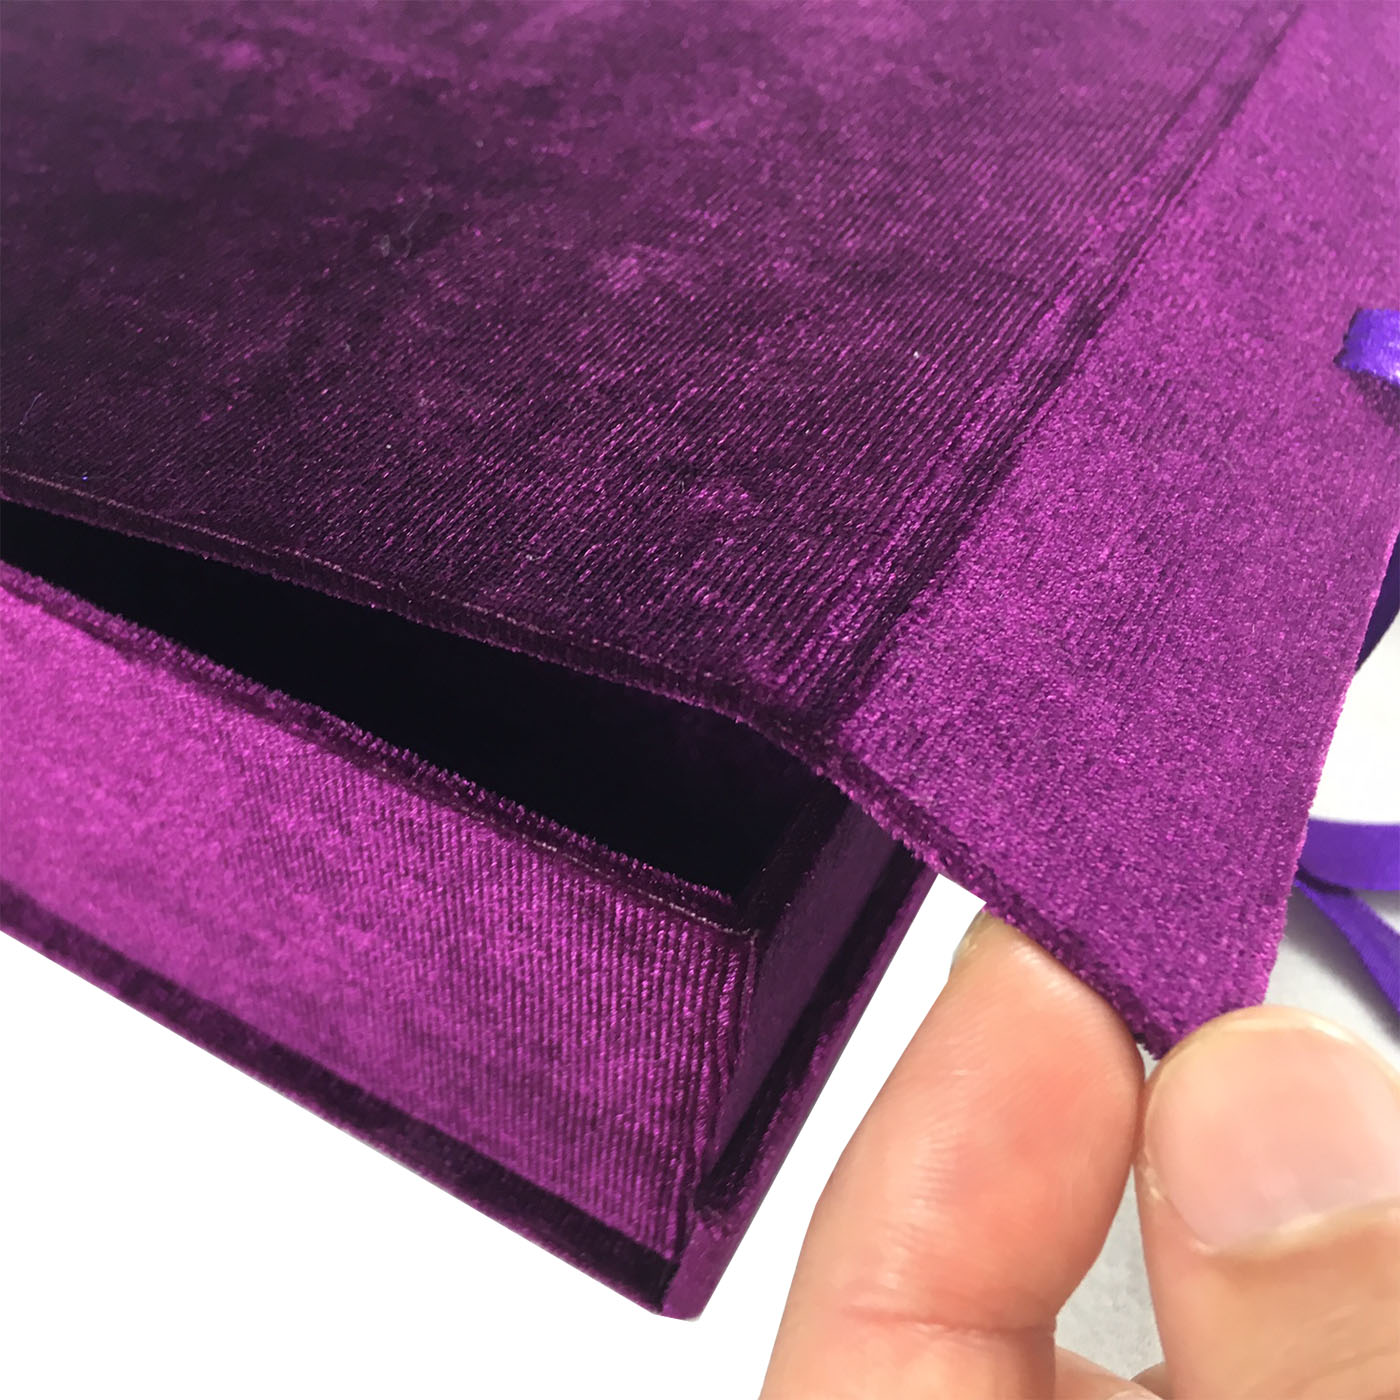 velvet packaging boxes